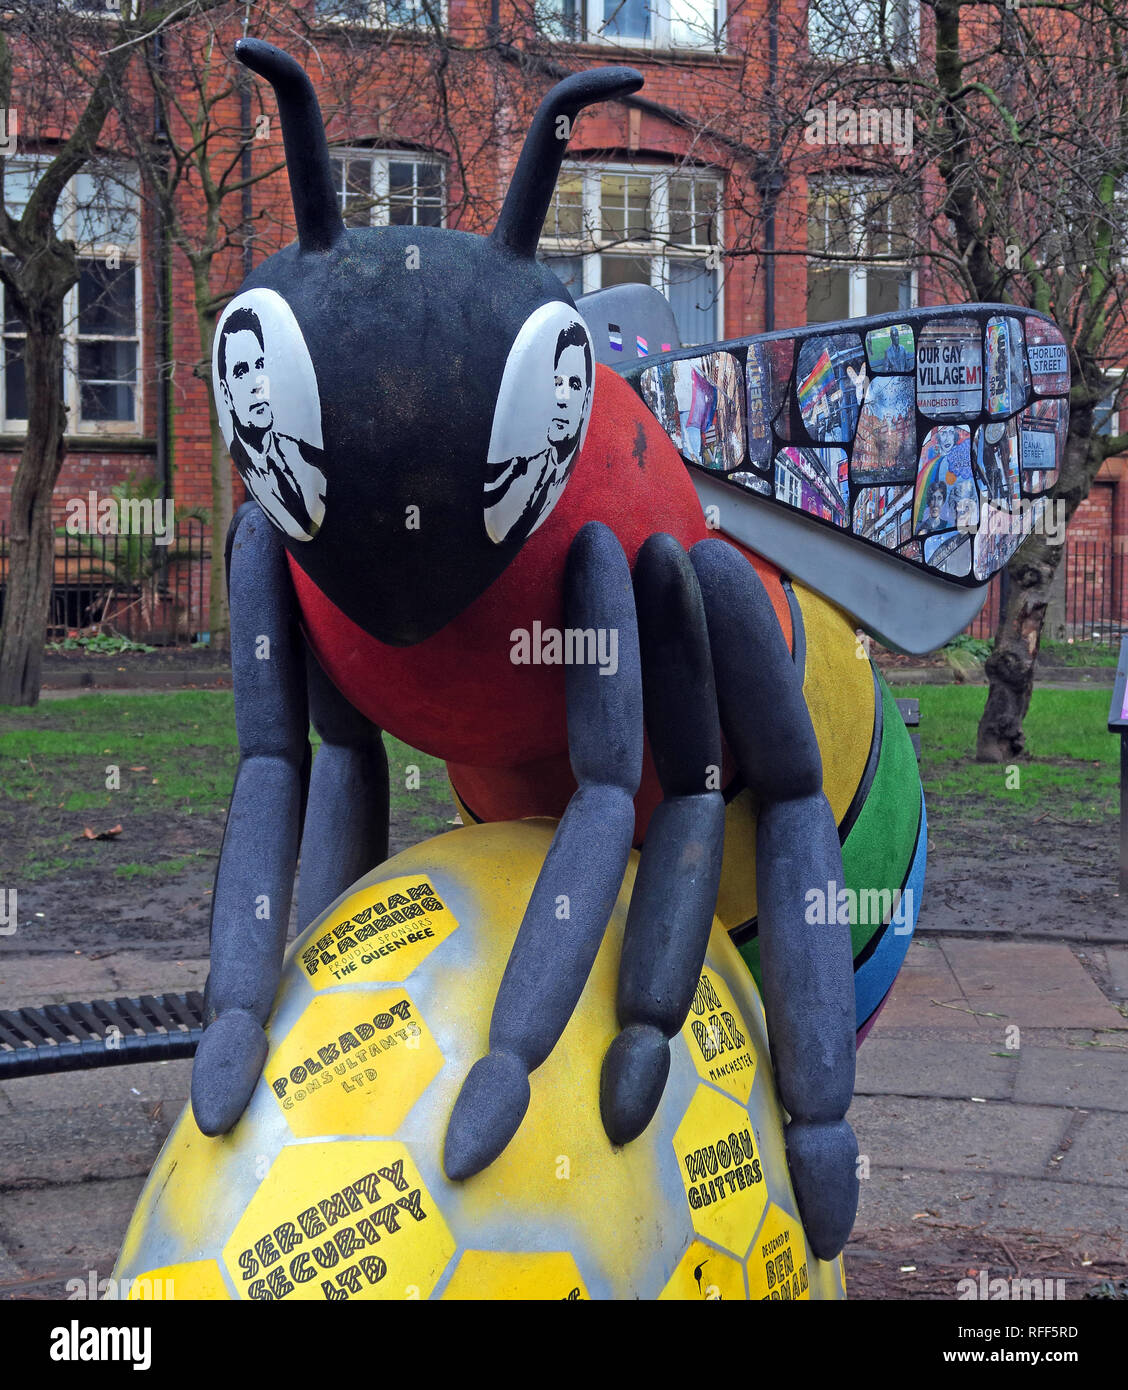 Bee In The City - Sackville Gardens featuring Alan Turing, Gay Village, Canal St, Manchester, Lancashire, England, UK - Stock Image